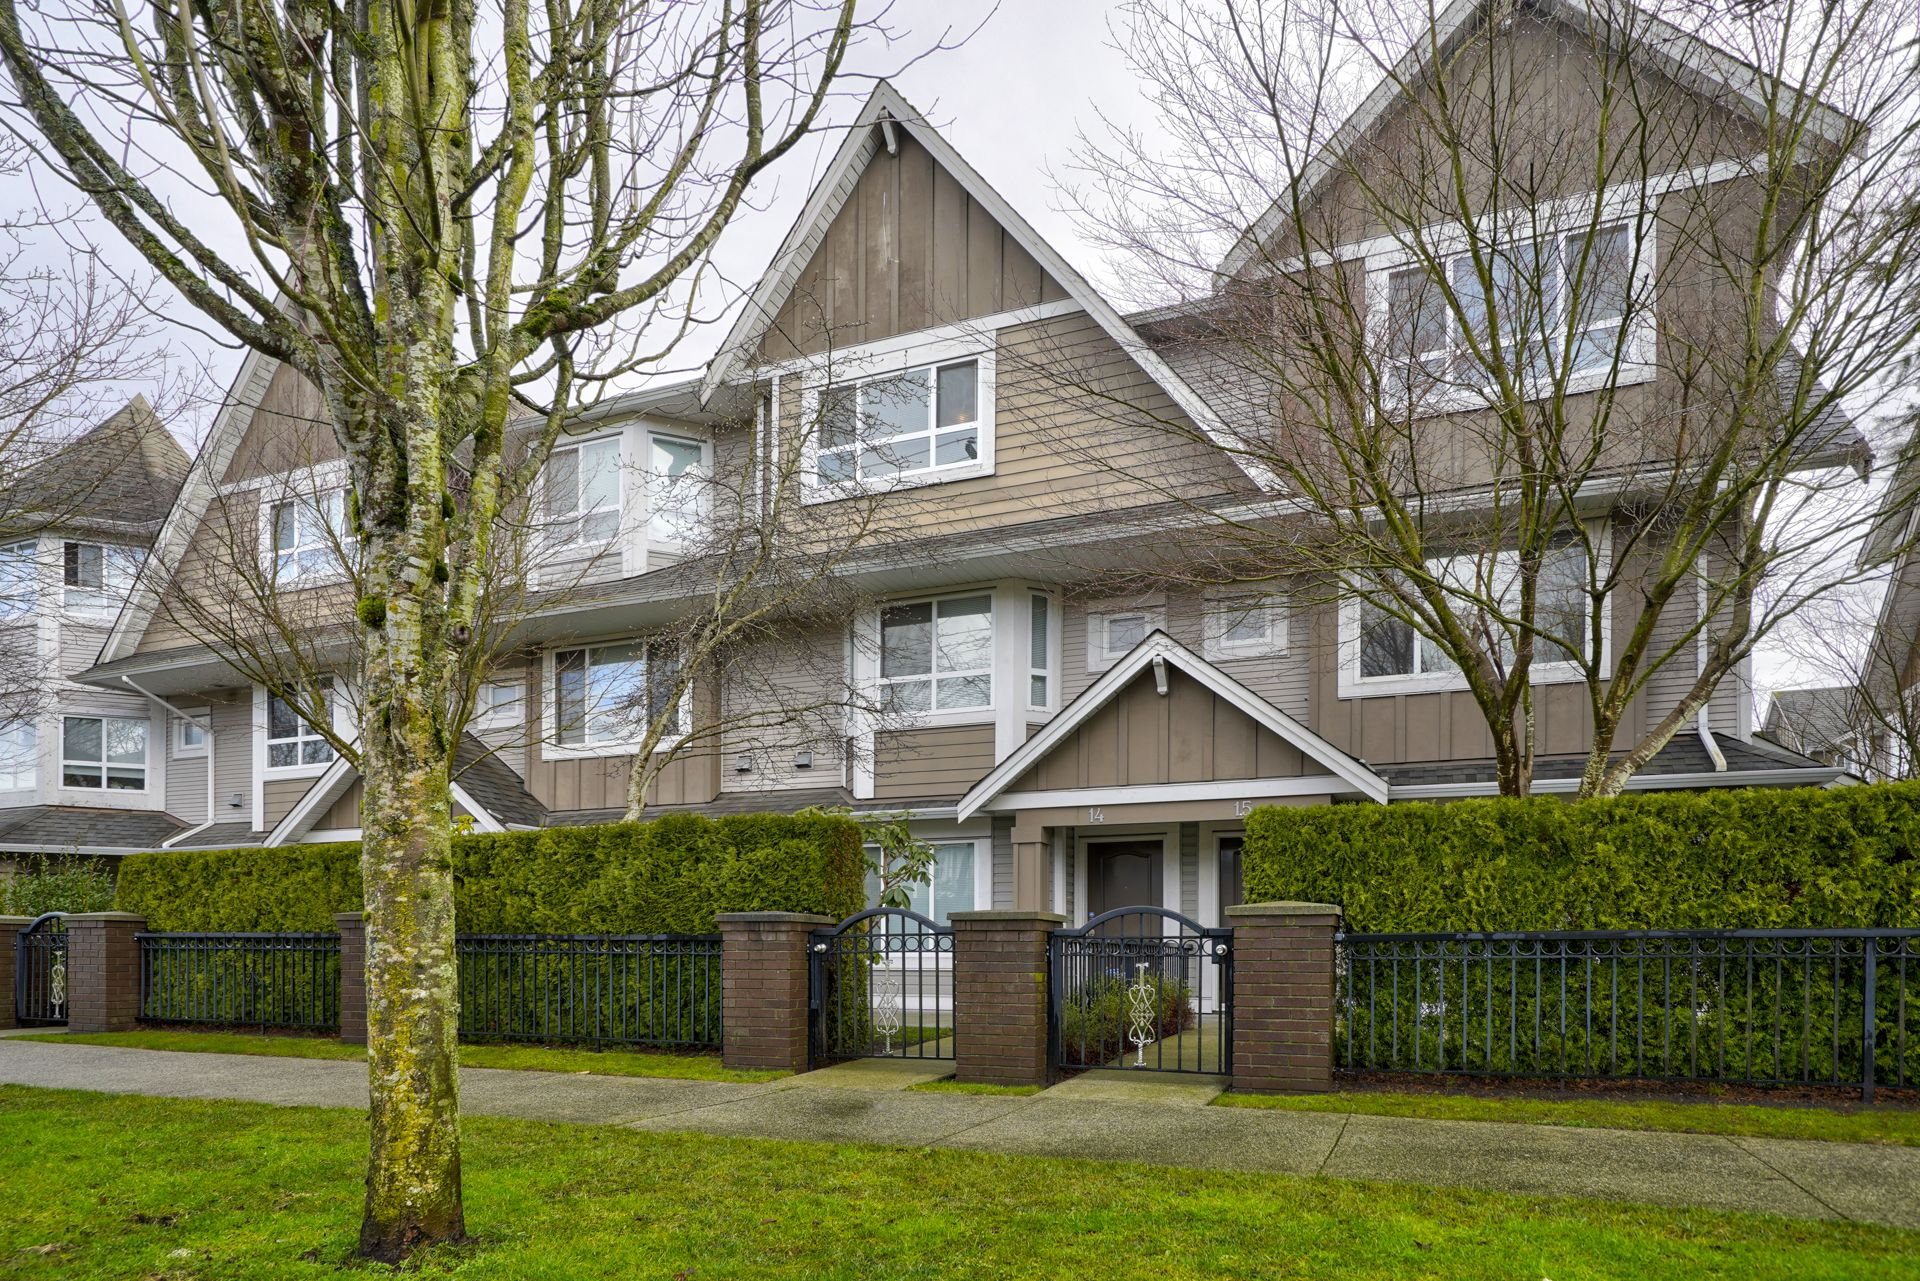 """Main Photo: 14 9288 KEEFER Avenue in Richmond: McLennan North Townhouse for sale in """"ASTORIA"""" : MLS®# R2431724"""